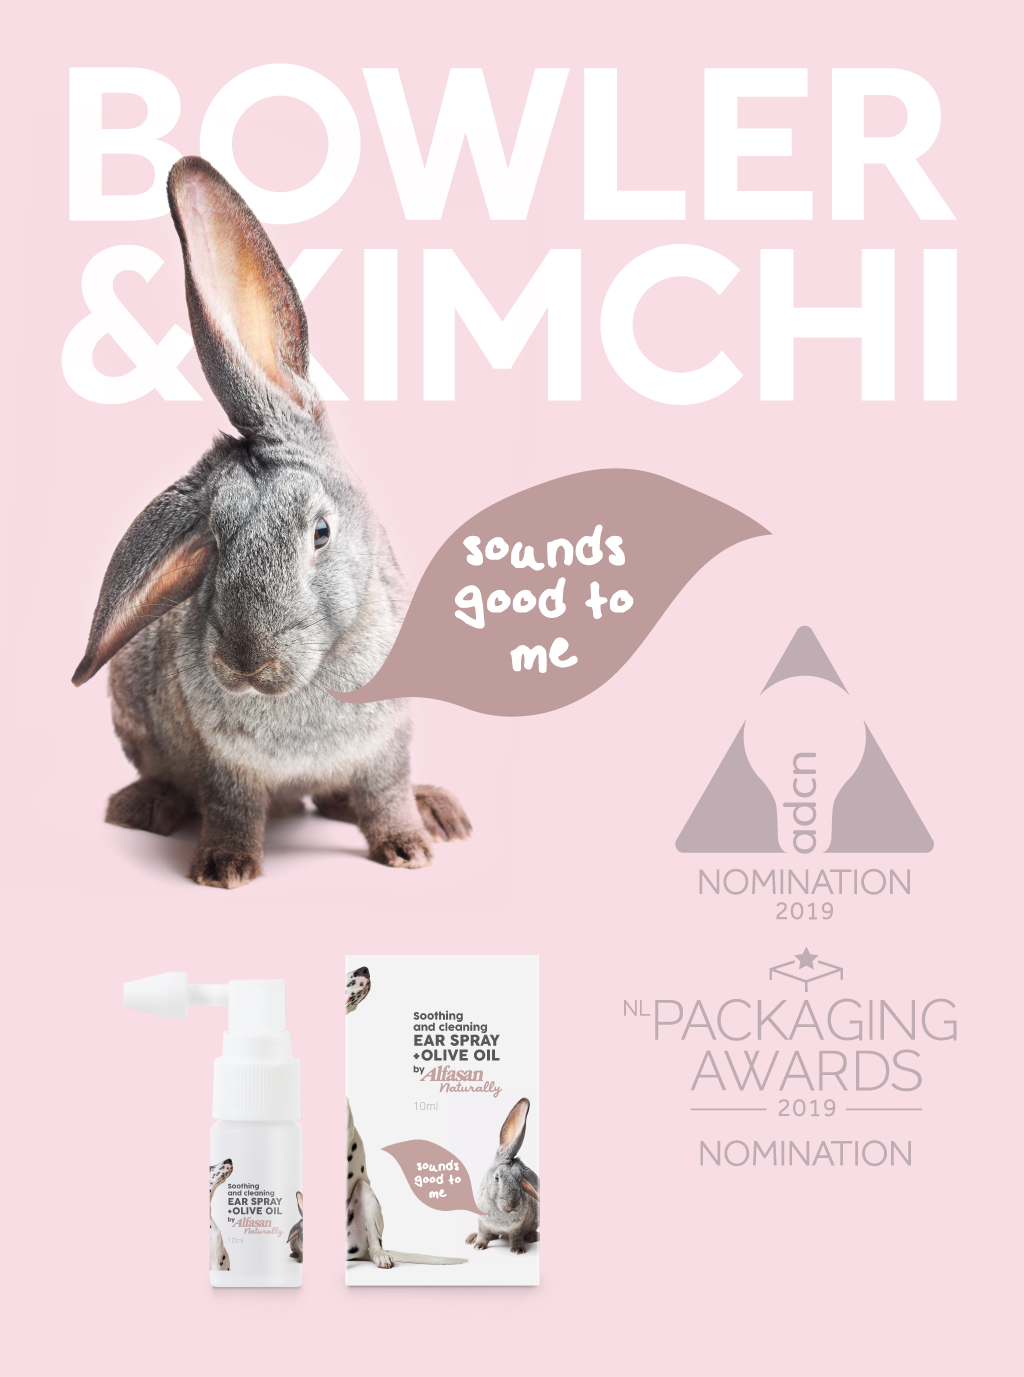 Bowler & Kimchi, Nomination for NL Packaging Awards 2019.